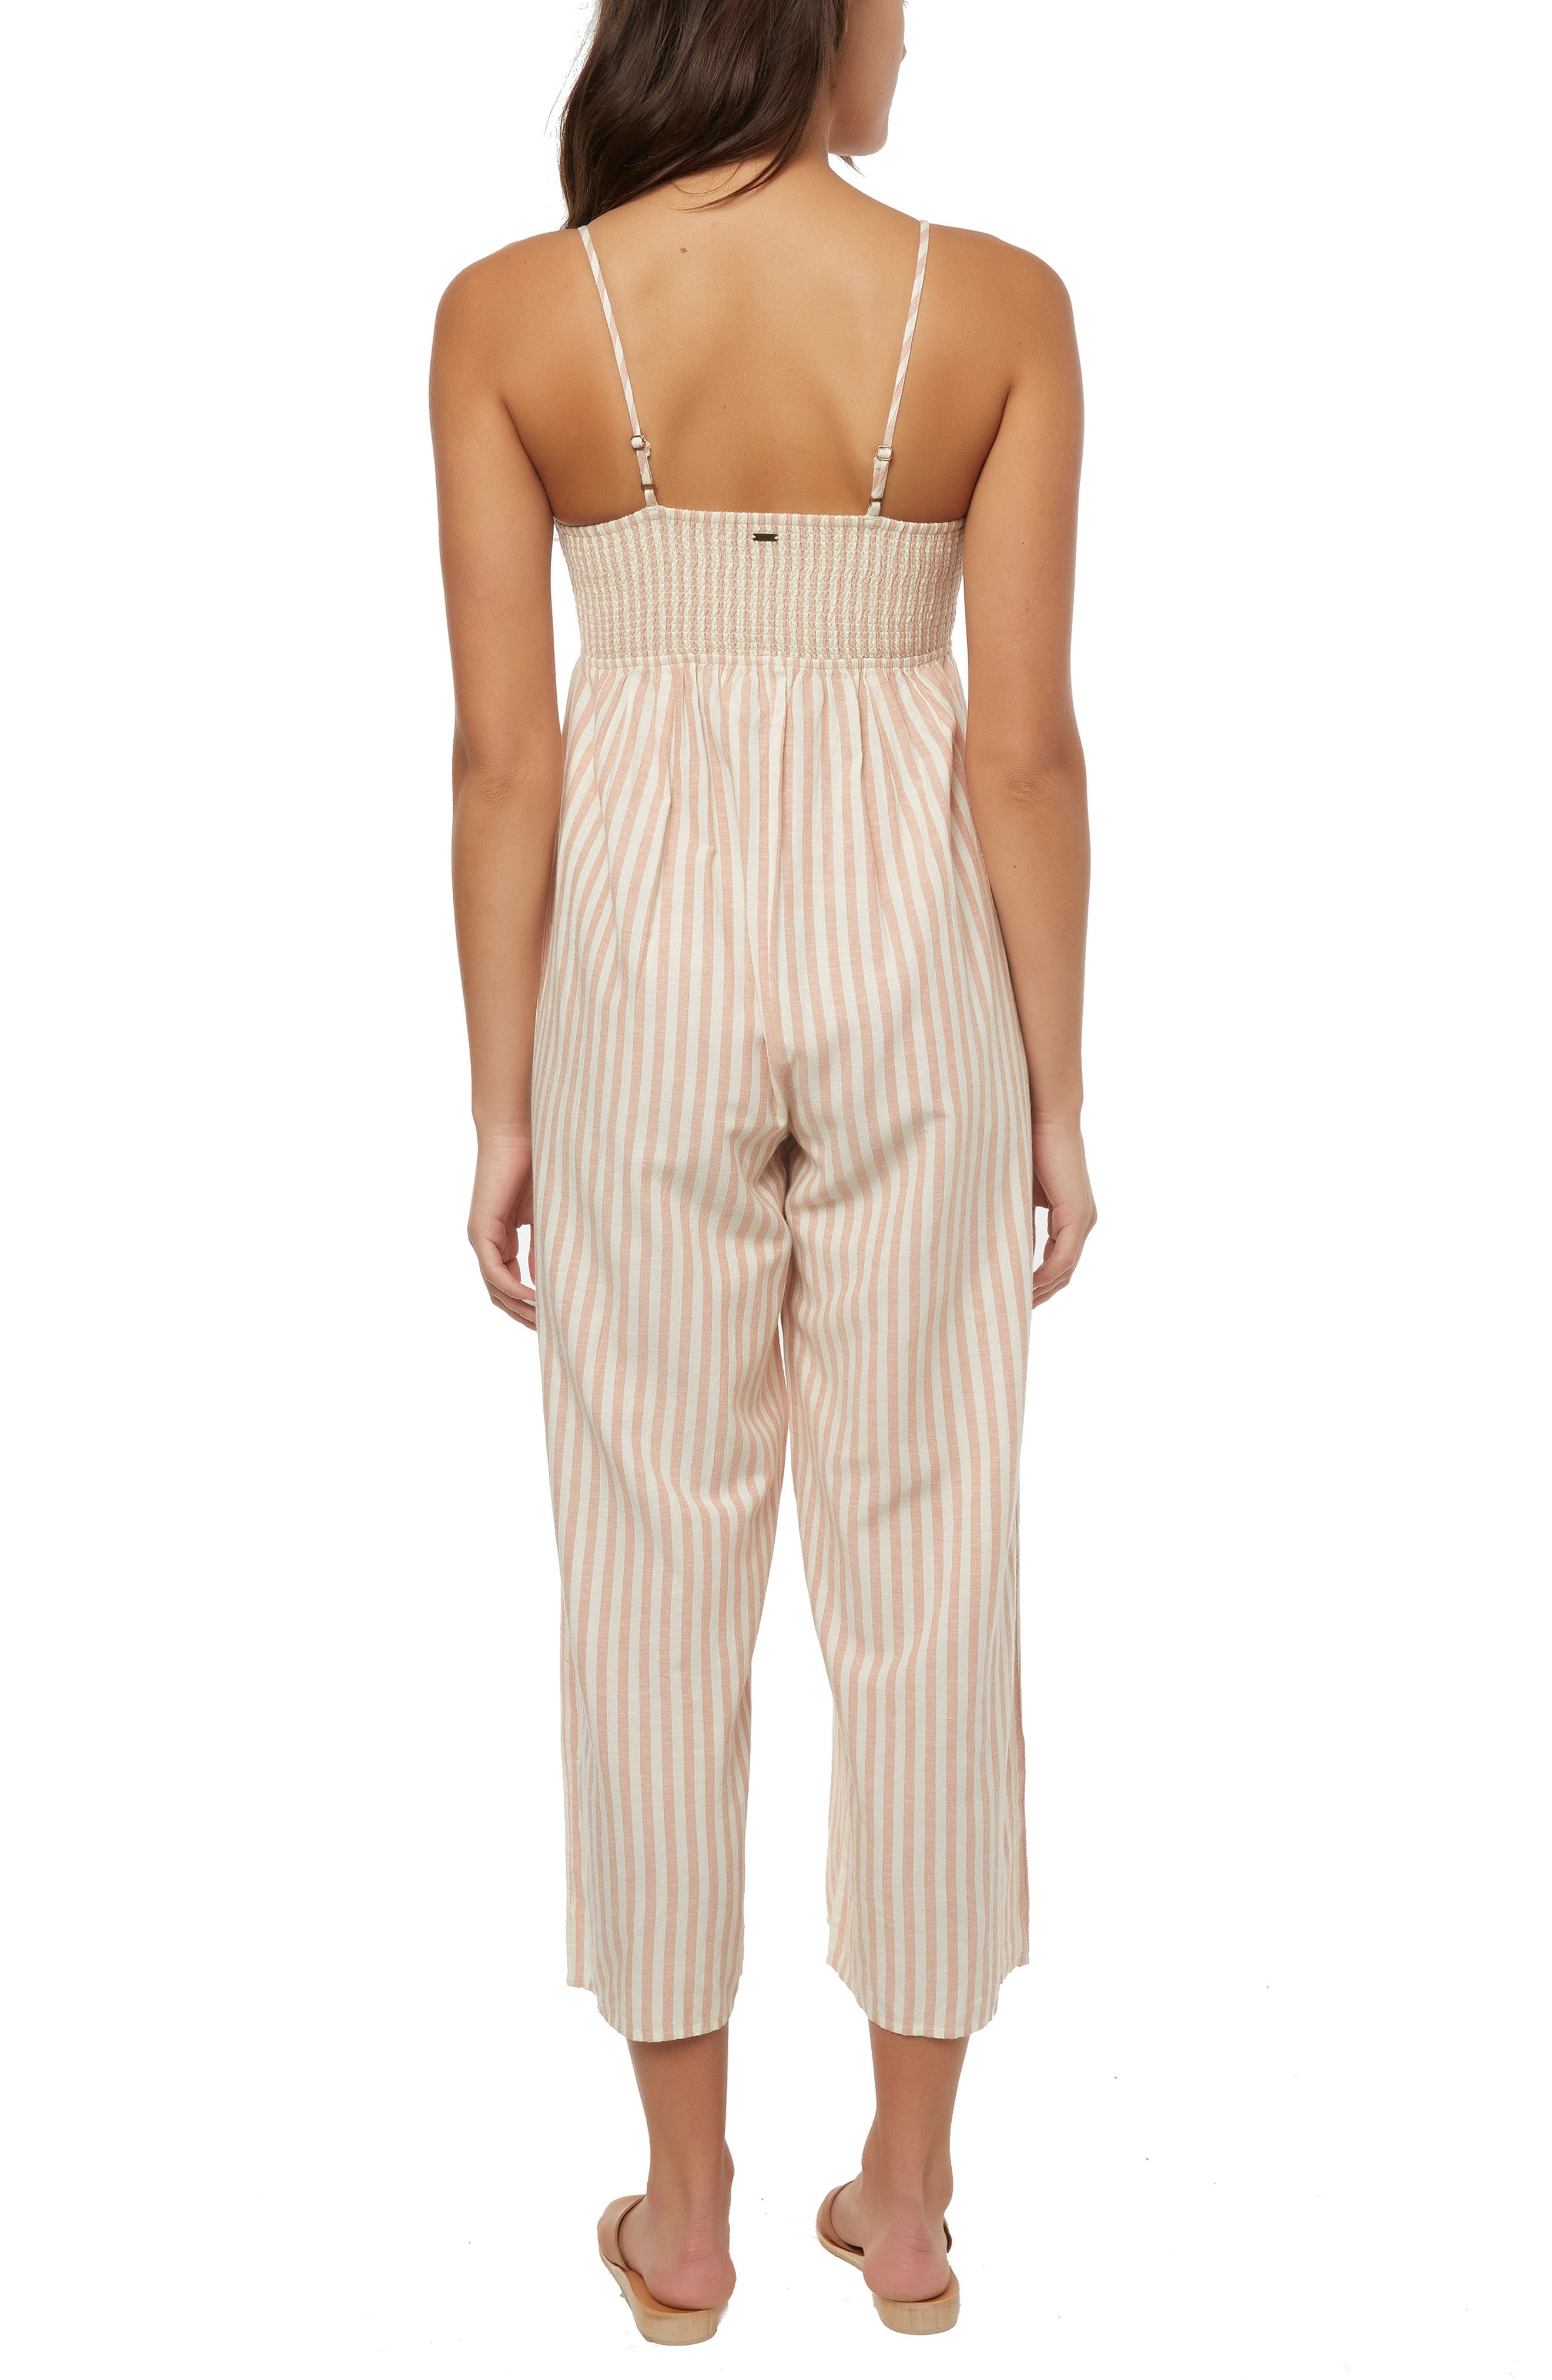 O'NEILL, Anabella Stripe Ruched Jumpsuit, Alternate thumbnail 2, color, NAKED